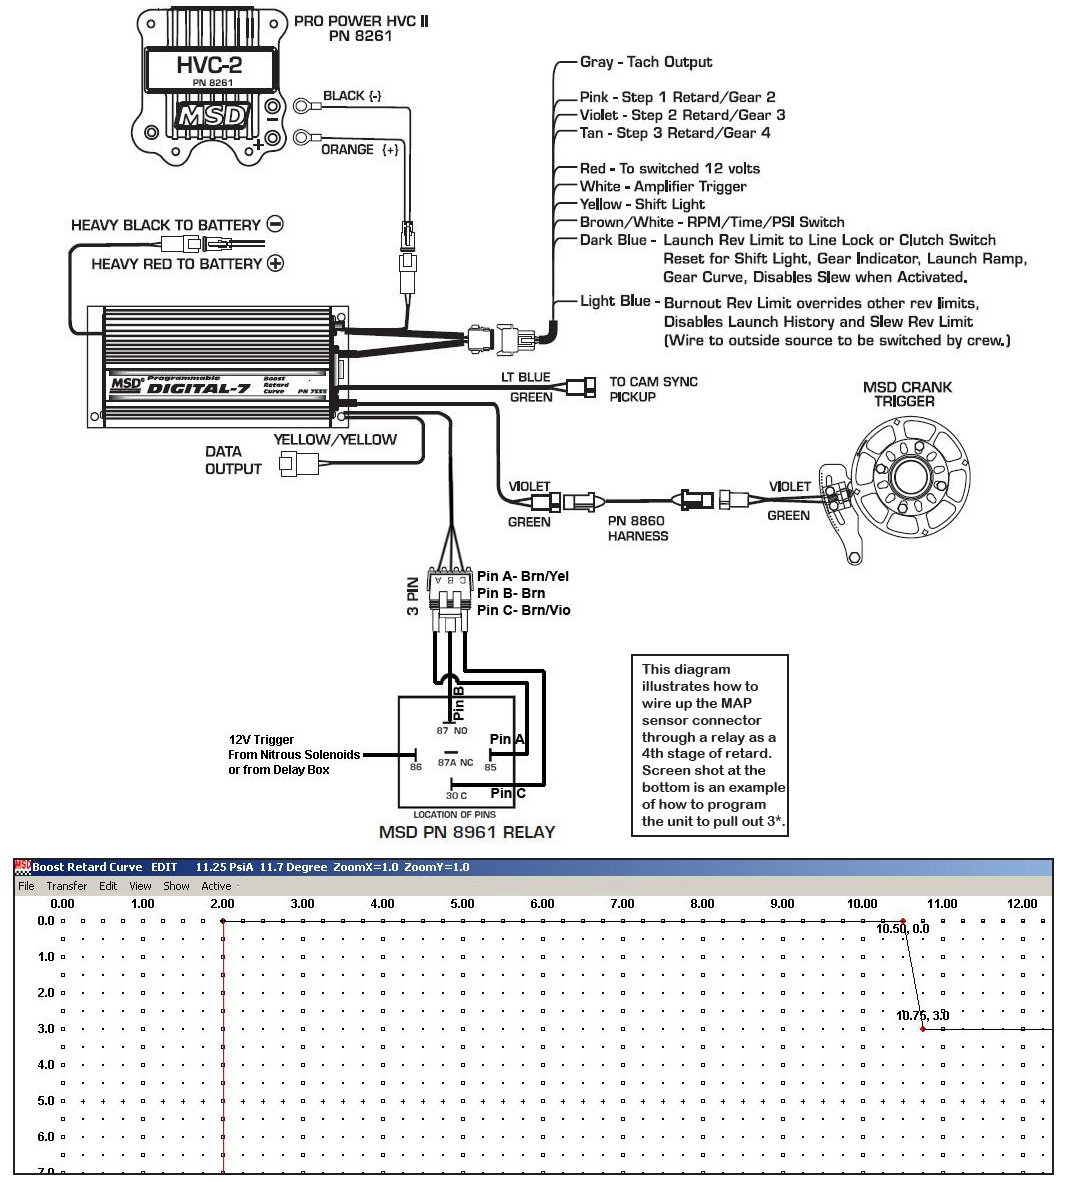 MAP 4th Stage REVA - Holley Blog  Wire Relay Wiring Diagram Nitrous on horn relay diagram, master cylinder diagram, 4 wire sensor diagram, fuel pump diagram, car relay diagram, 94 honda accord fuse box diagram, 5 wire relay diagram, 4 wire trailer diagram, relay switch diagram, relay connection diagram, jeep wrangler front suspension diagram, 4 wire horn relay, warn winch parts diagram, 4 pin relay diagram, 30 amp relay diagram, 4 wire relay schematic, antenna circuit diagram, 4 wire fan relay, 6 volt system diagram,